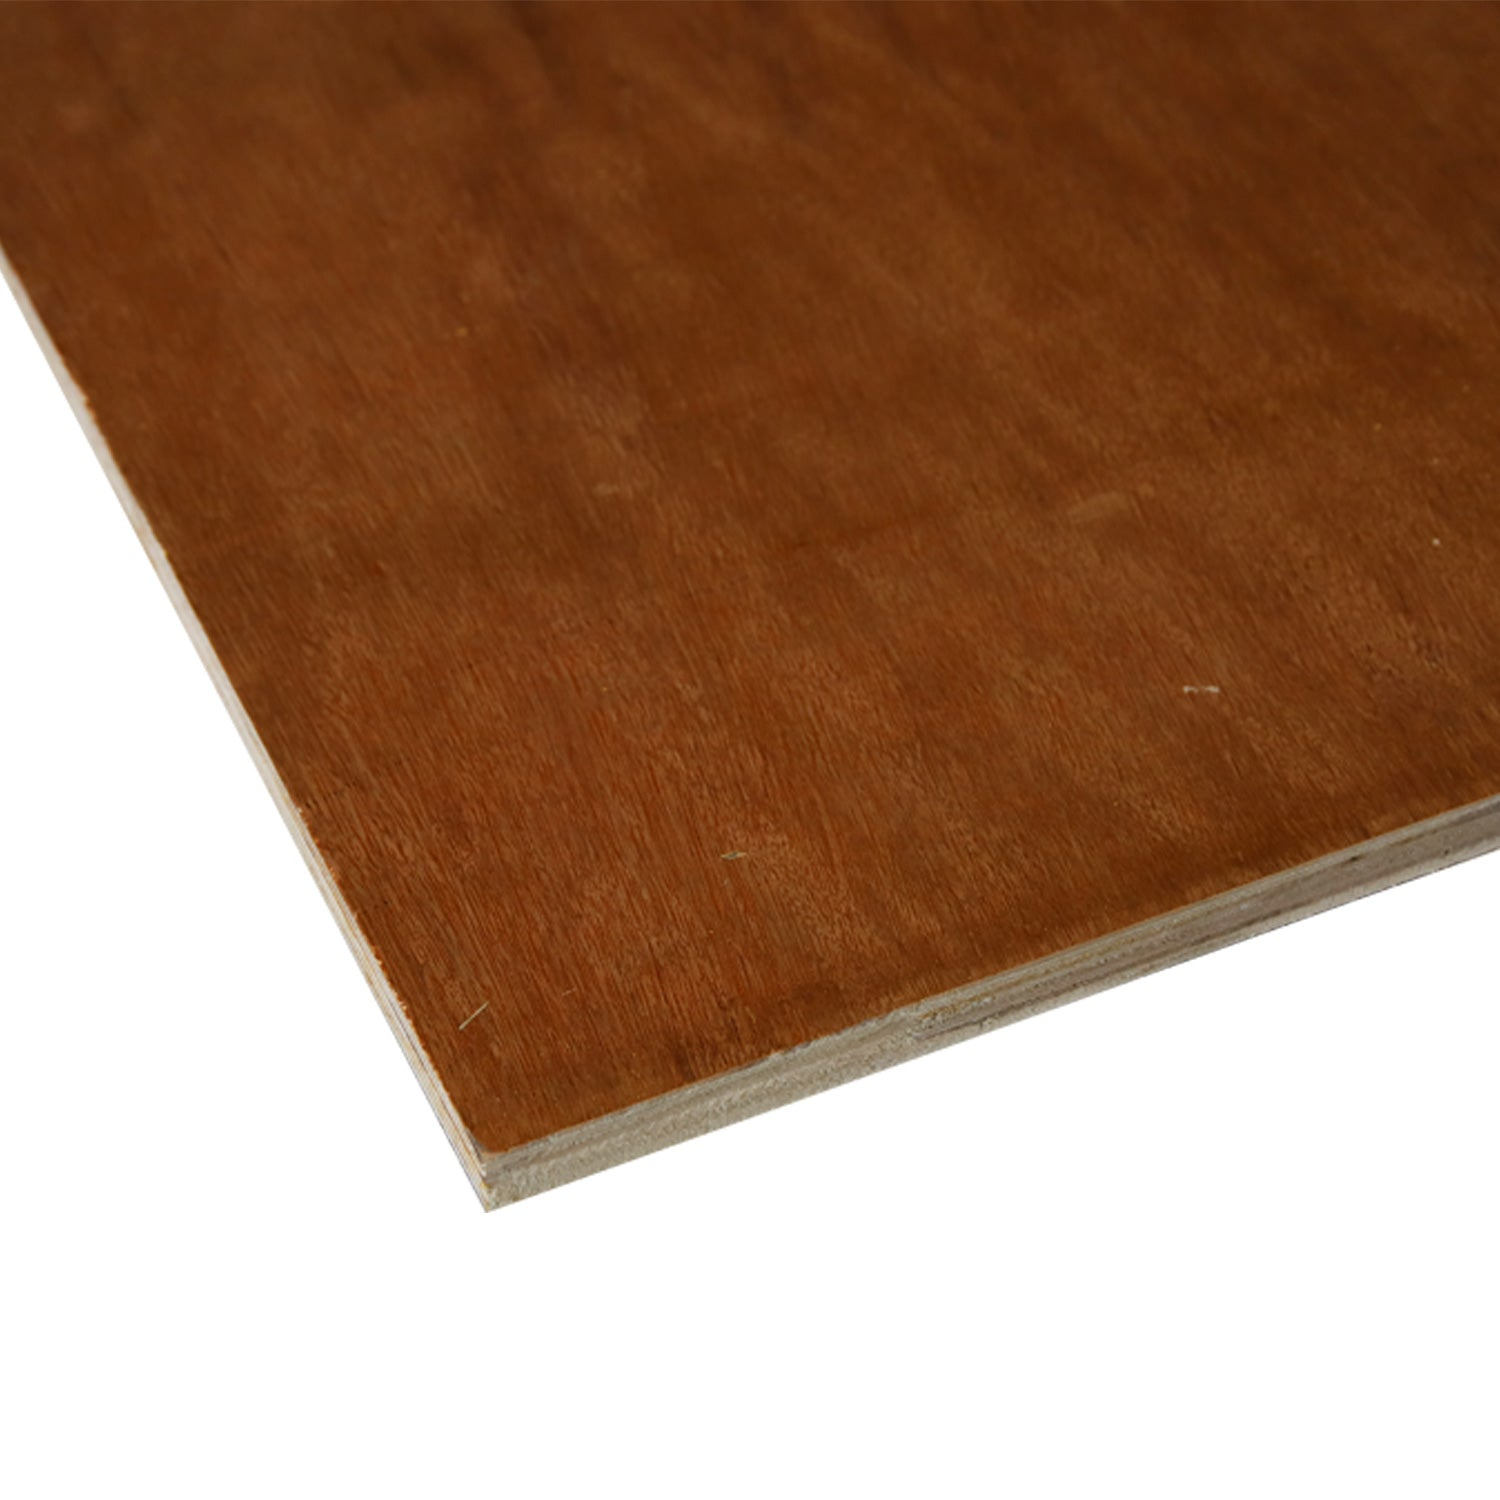 Finish Ply (Hardwood) 8' x 4' x 18mm